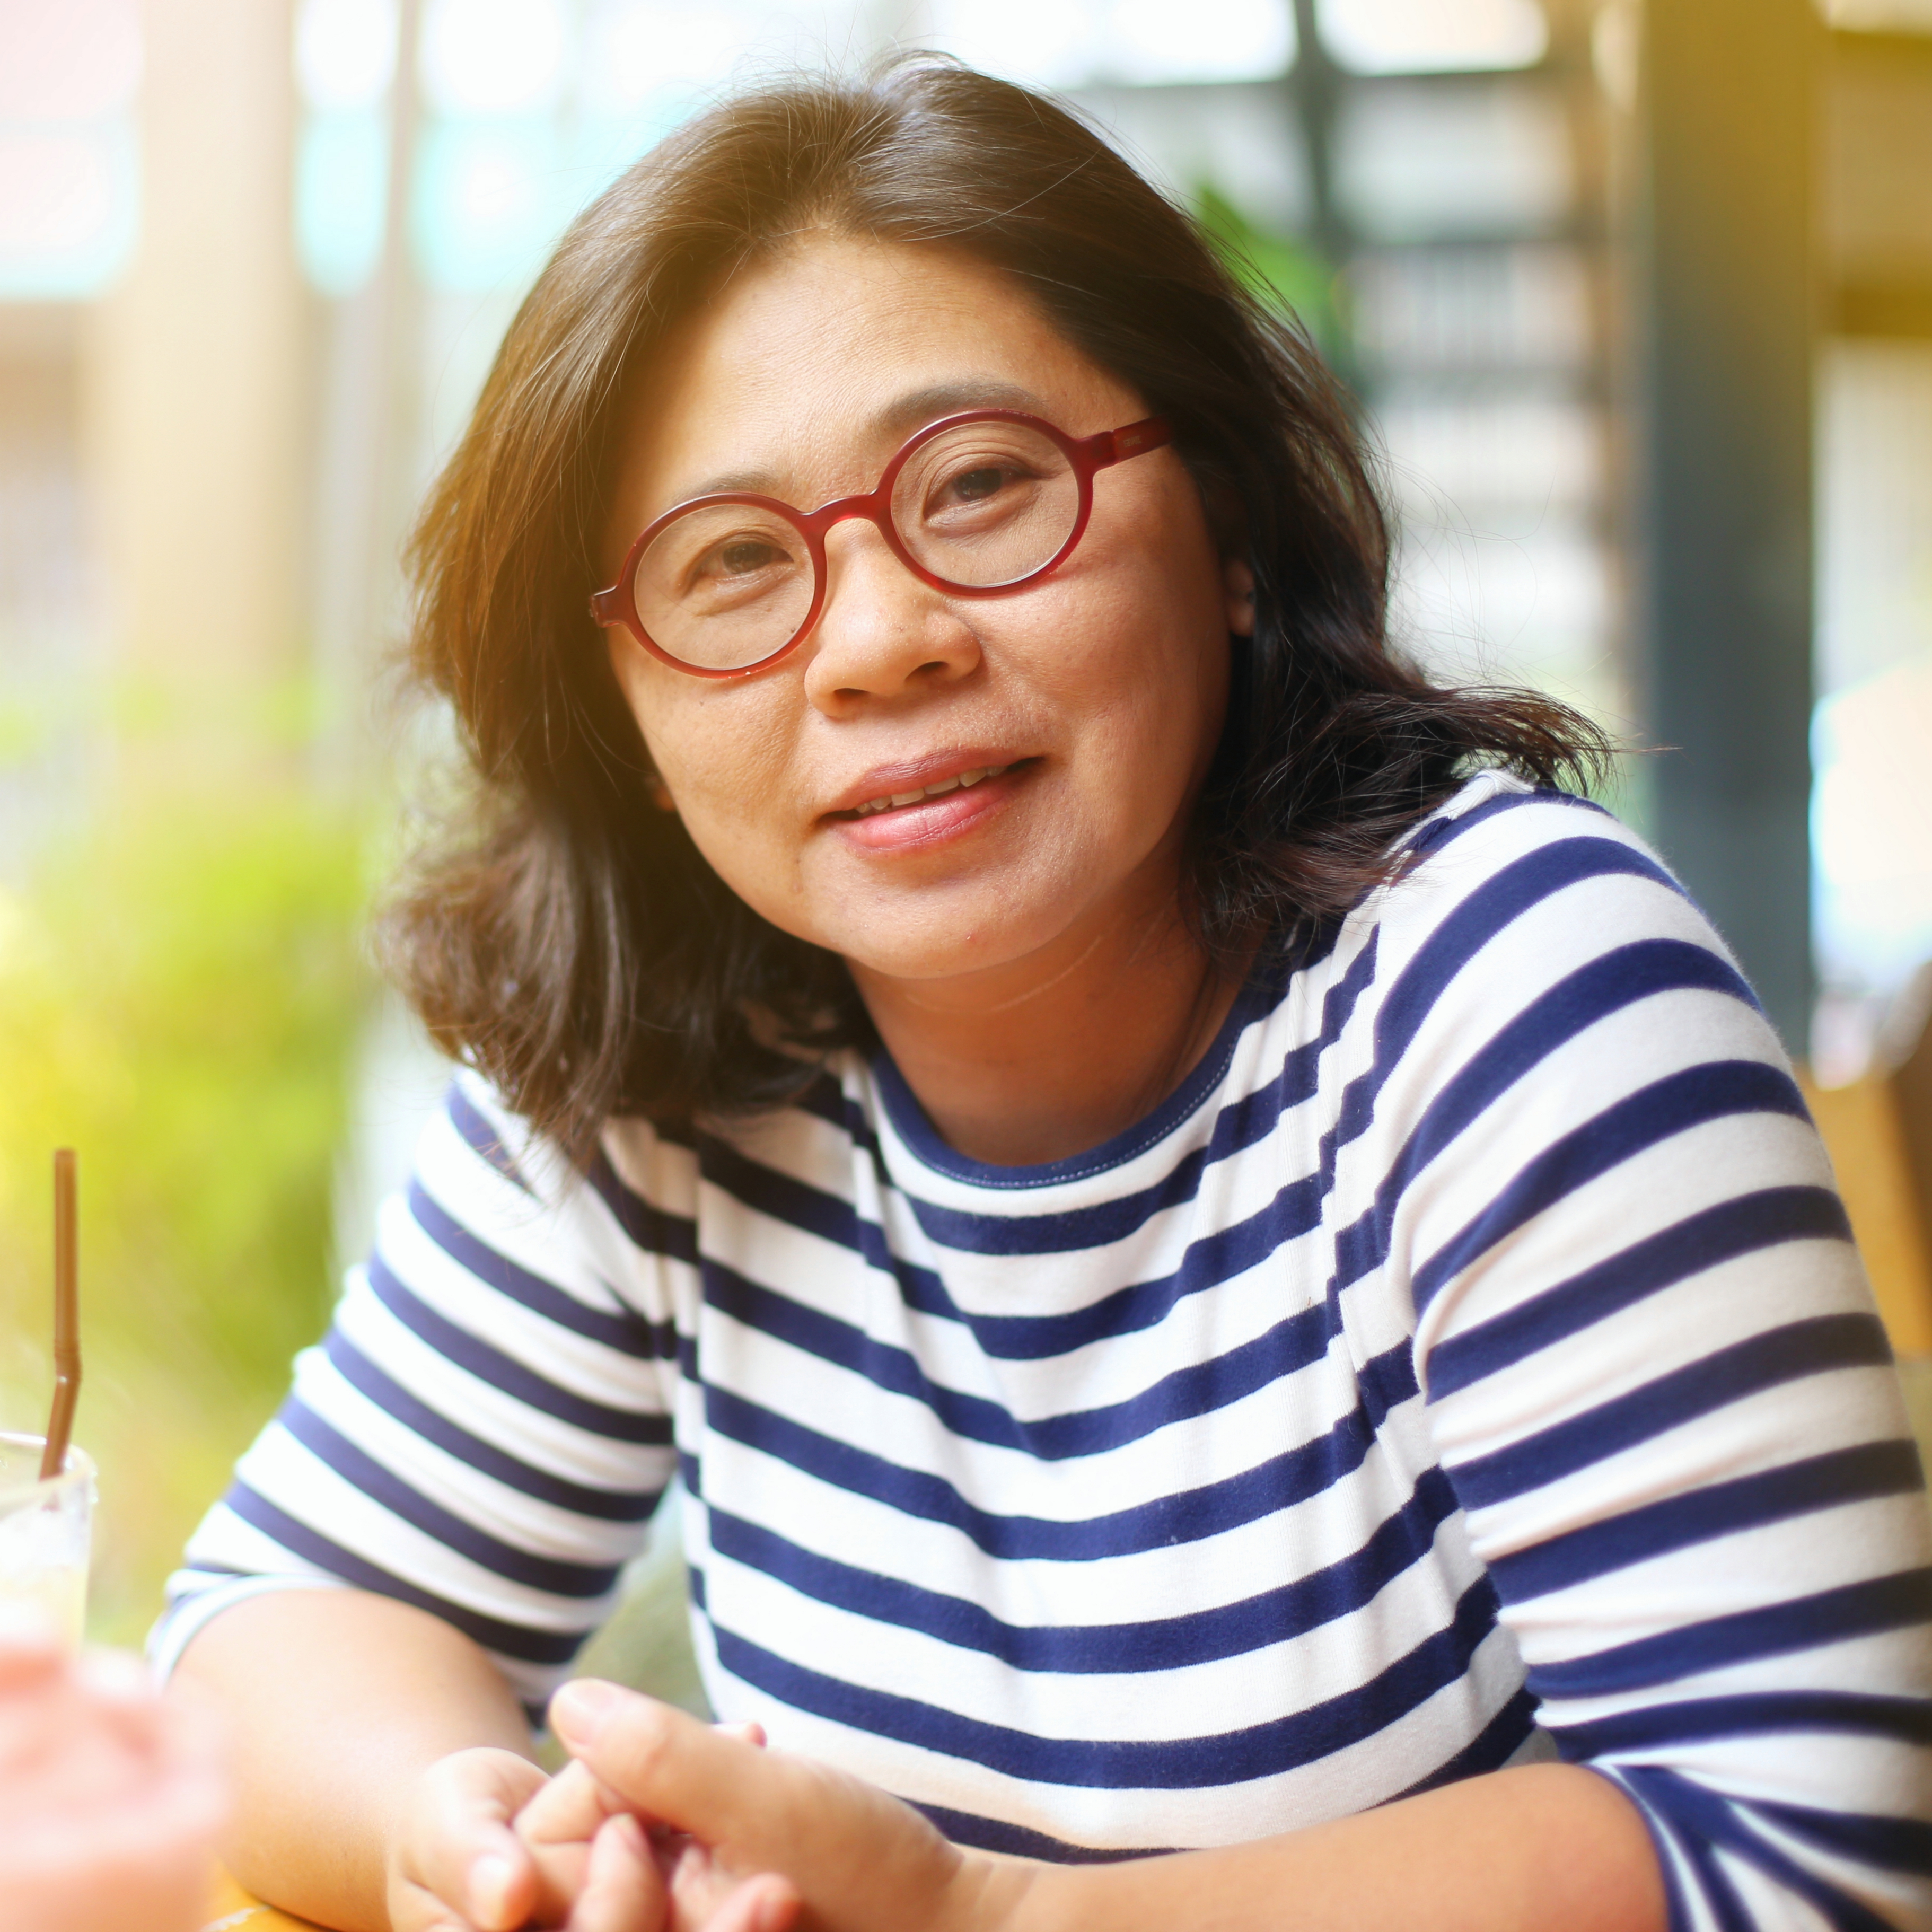 a mature or middle-aged Asian woman wearing glassed and sitting outdoors smiling, looking content and happy